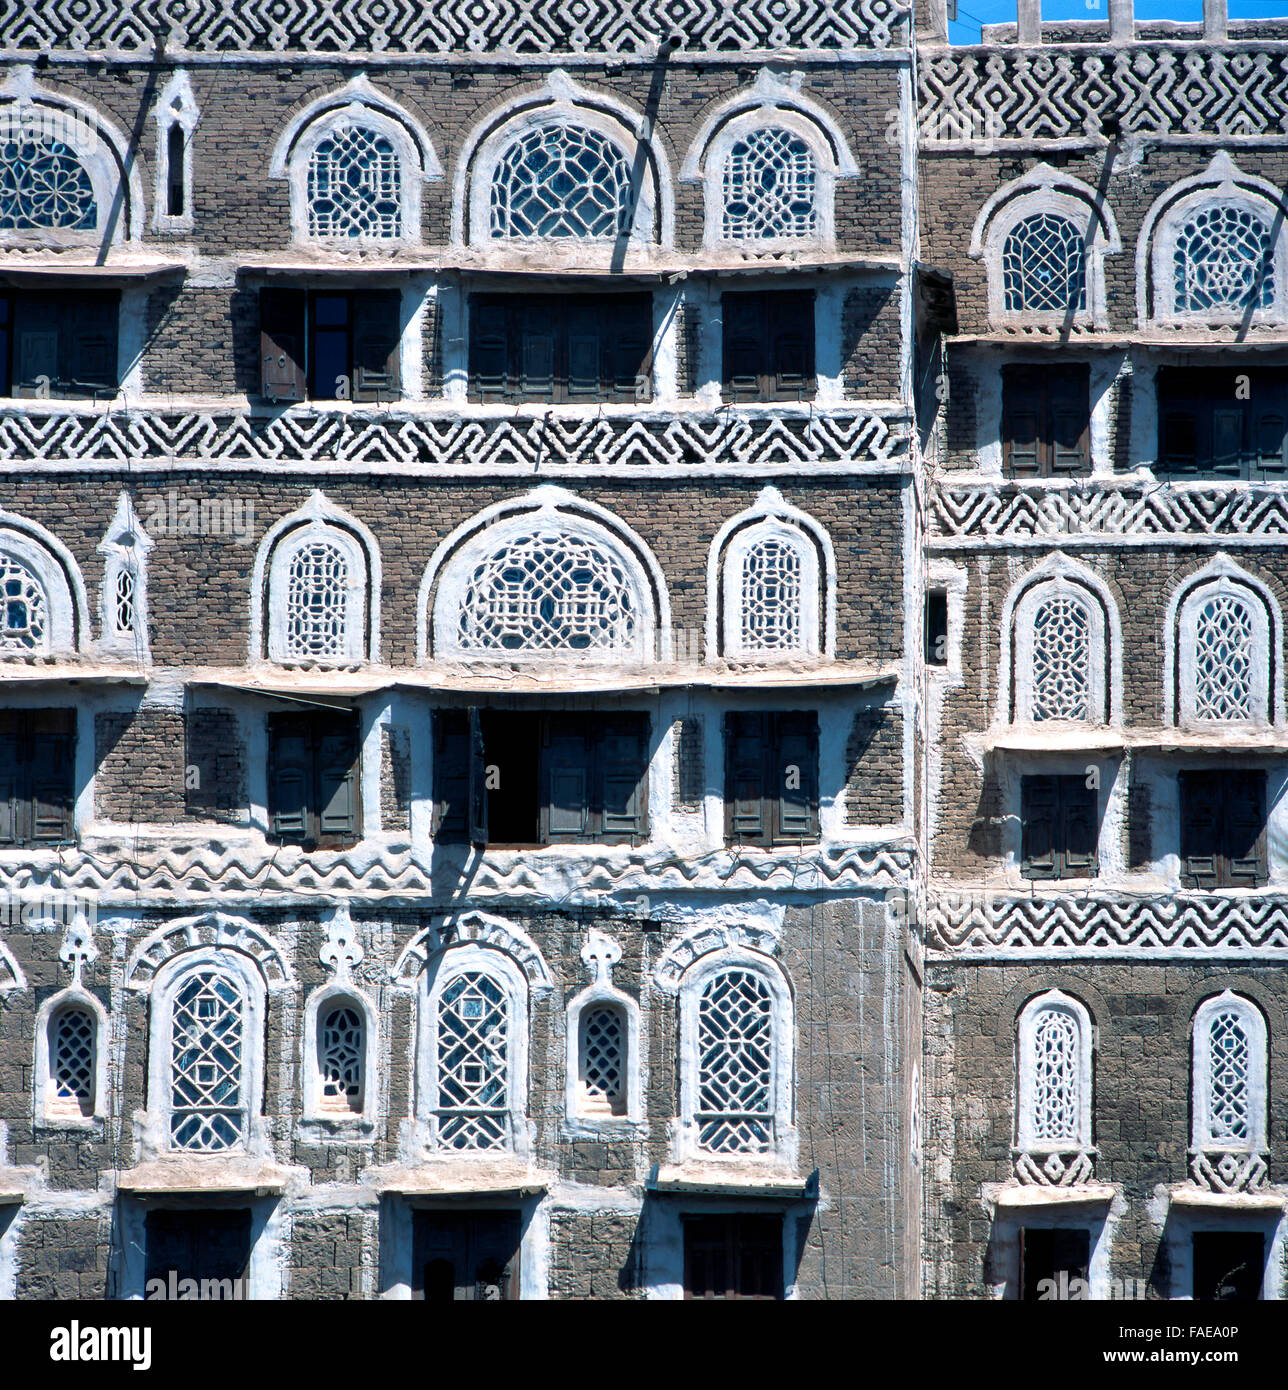 Town houses in the Old Town, Sana'a, Yemen - Stock Image